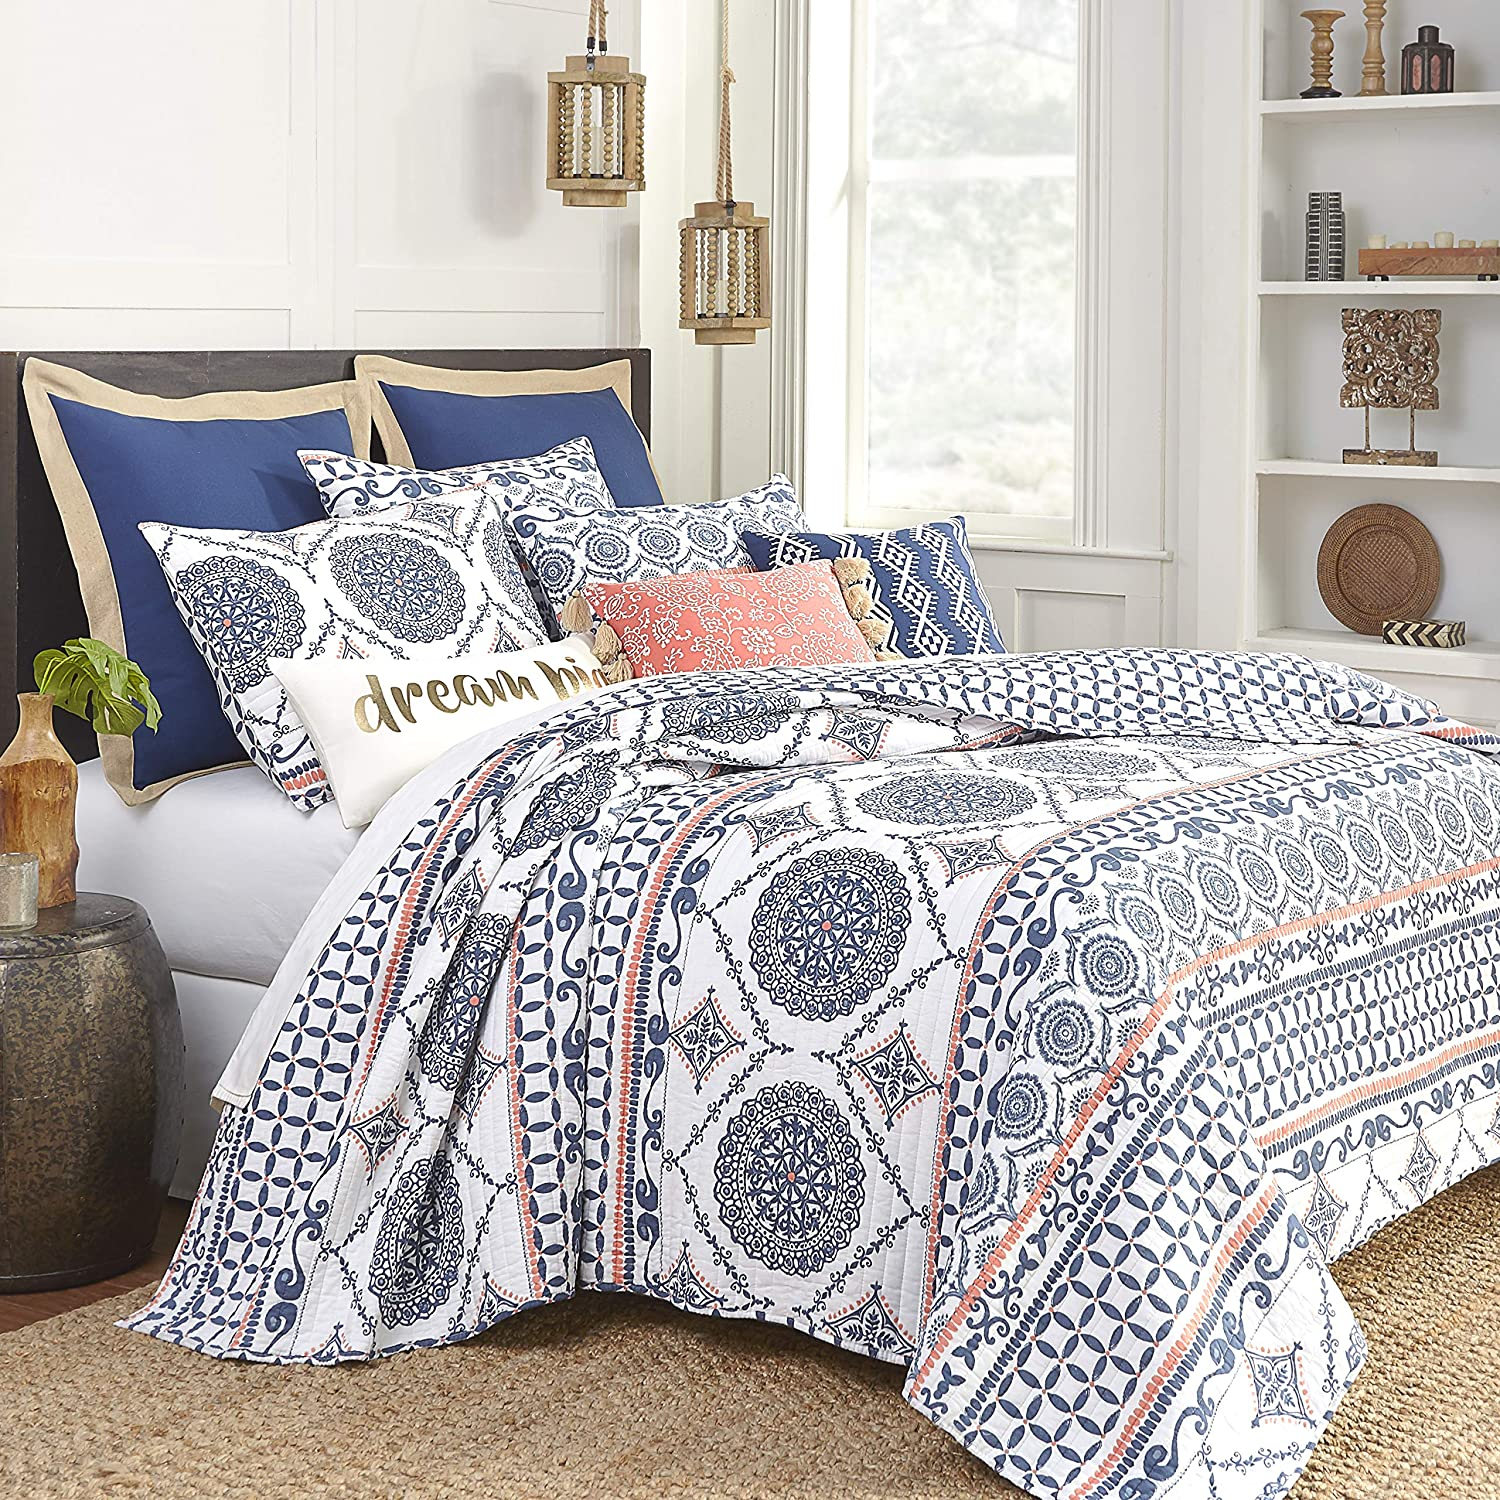 Amazon Com Levtex Home Caperoad Quilt Set King Two Pillow Shams Medallion Geometric In Navy White Tangerine Size 106x92in And Sham 36x20in